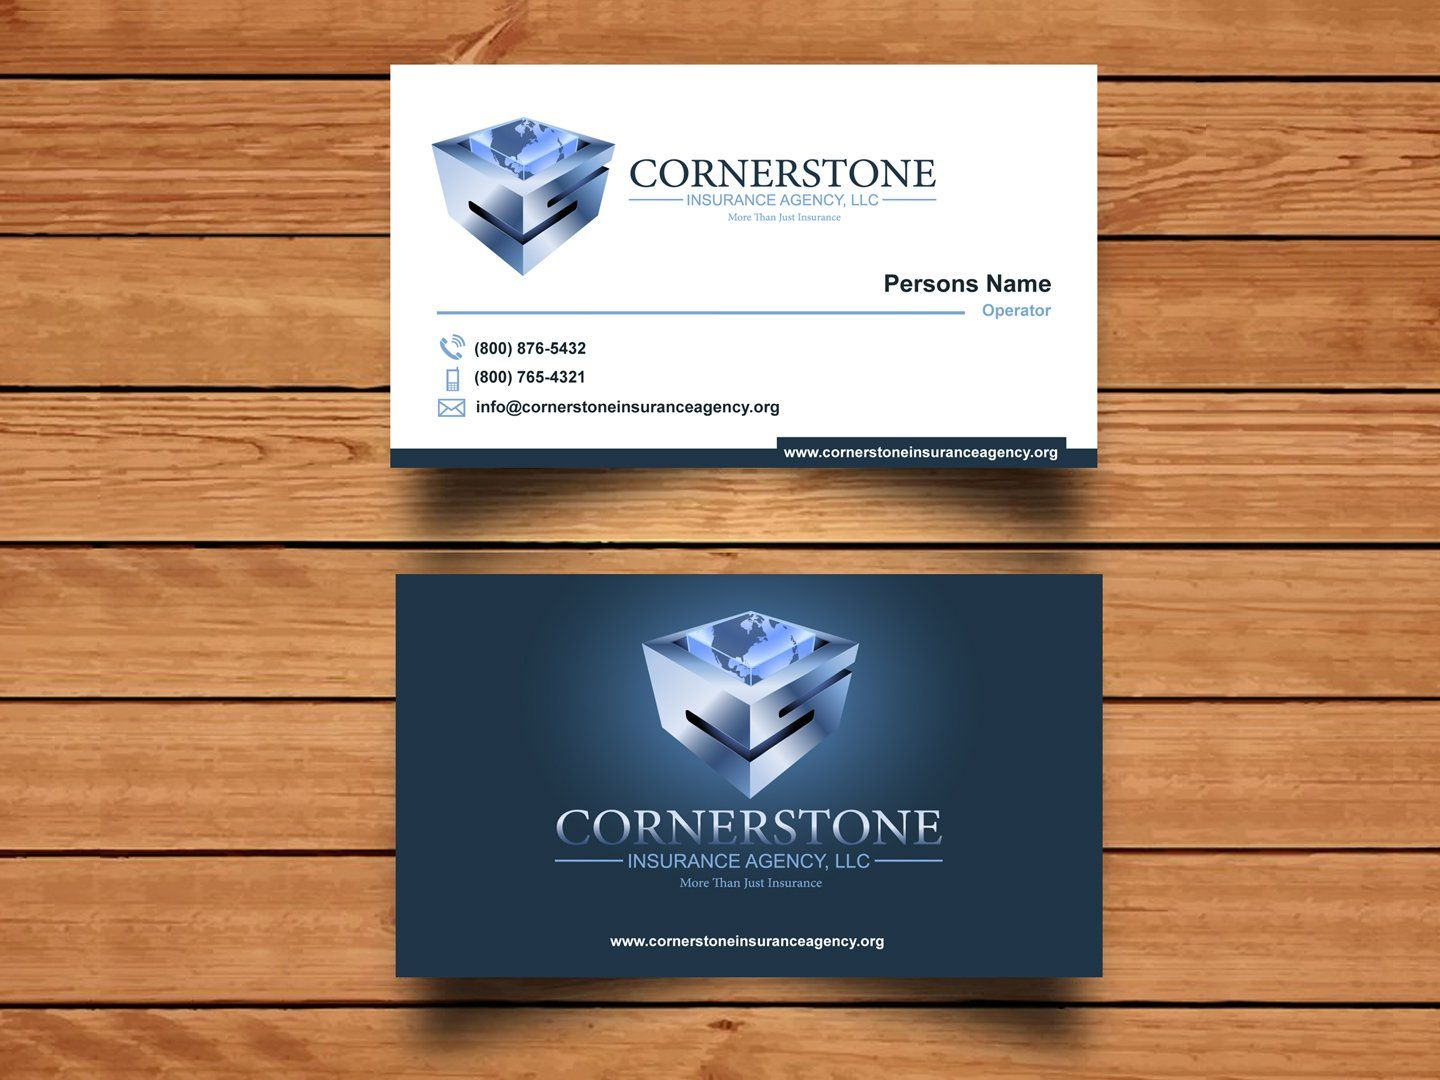 Logo And Business Card Design 179 Cornerstone Insurance Agenc Llc Design Project Designcontest Business Card Design Card Design Business Cards